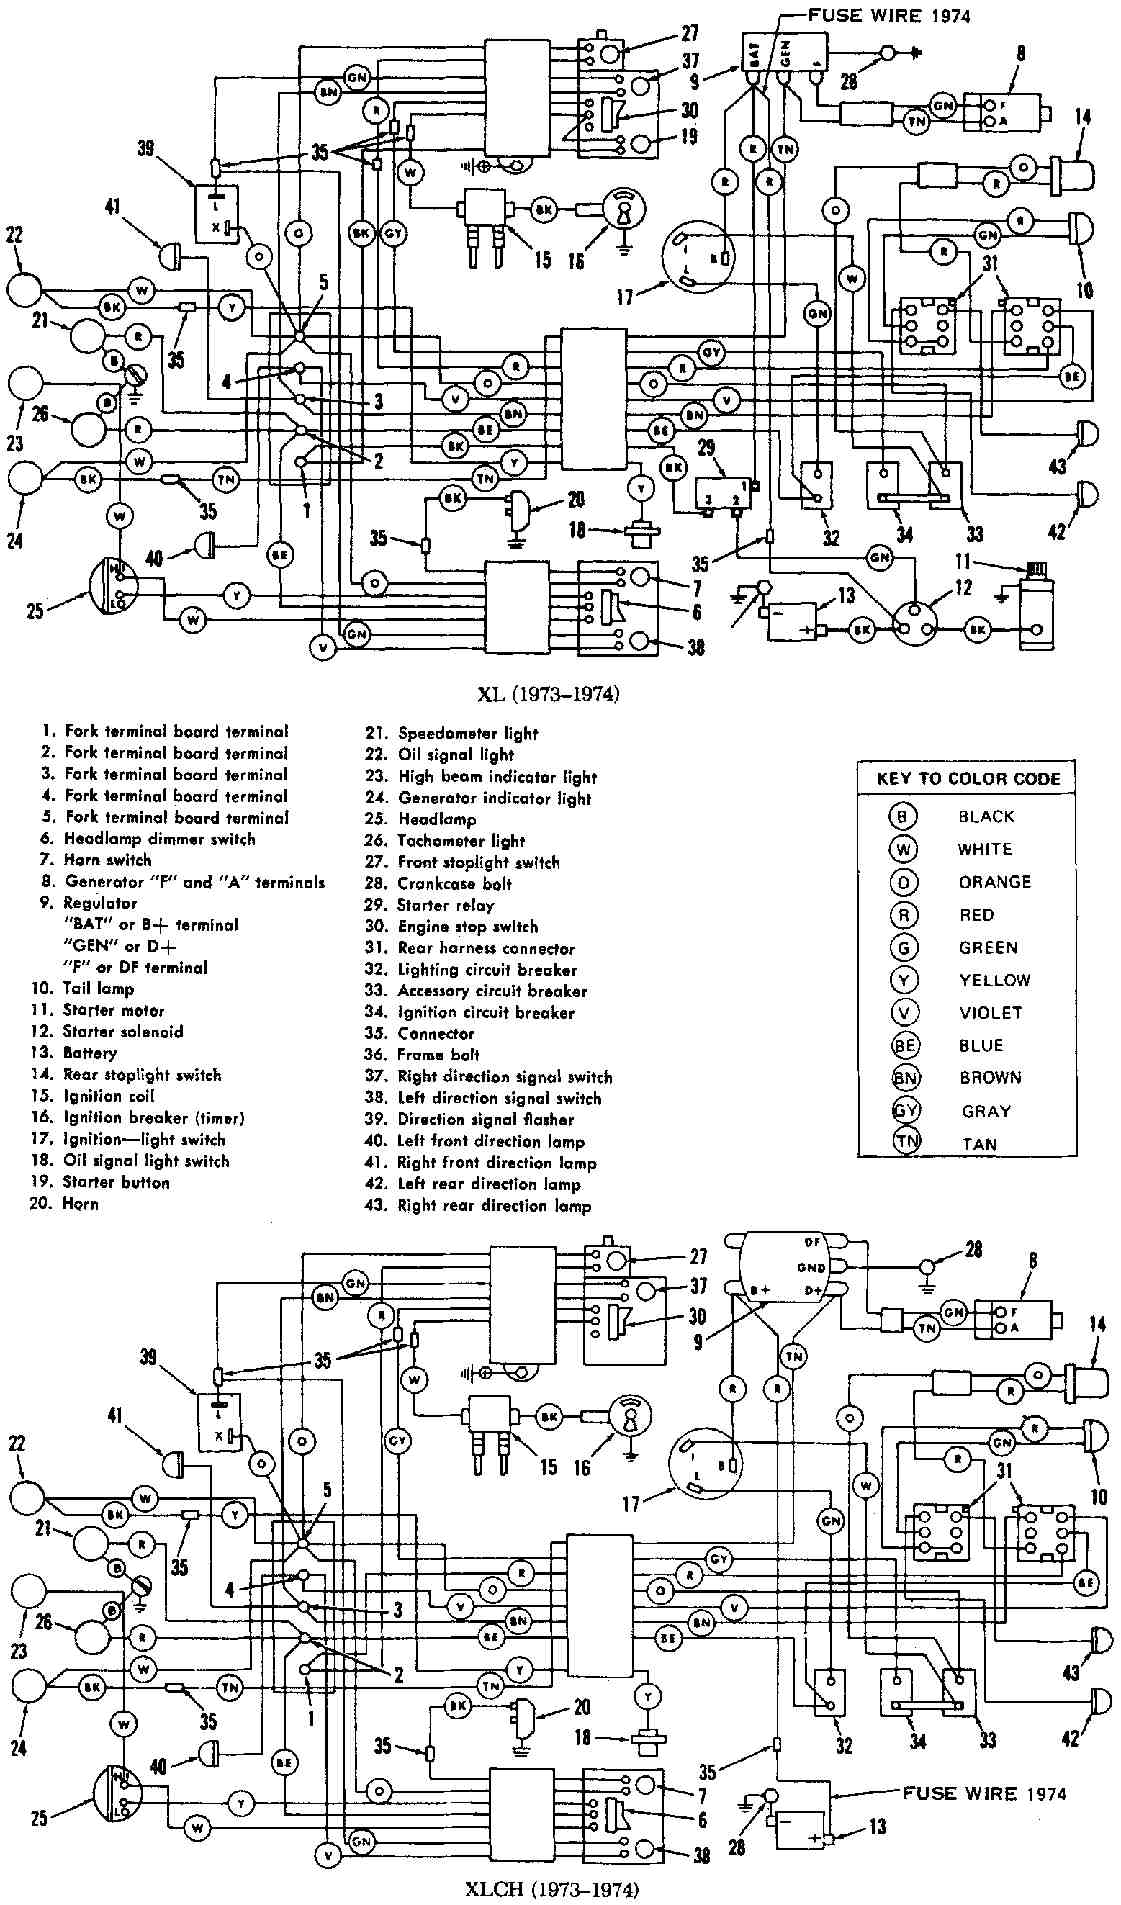 harley flh wiring harness diagram wiring diagram harley shovelhead oil cooler harley flh wire harness schematic [ 1121 x 1905 Pixel ]